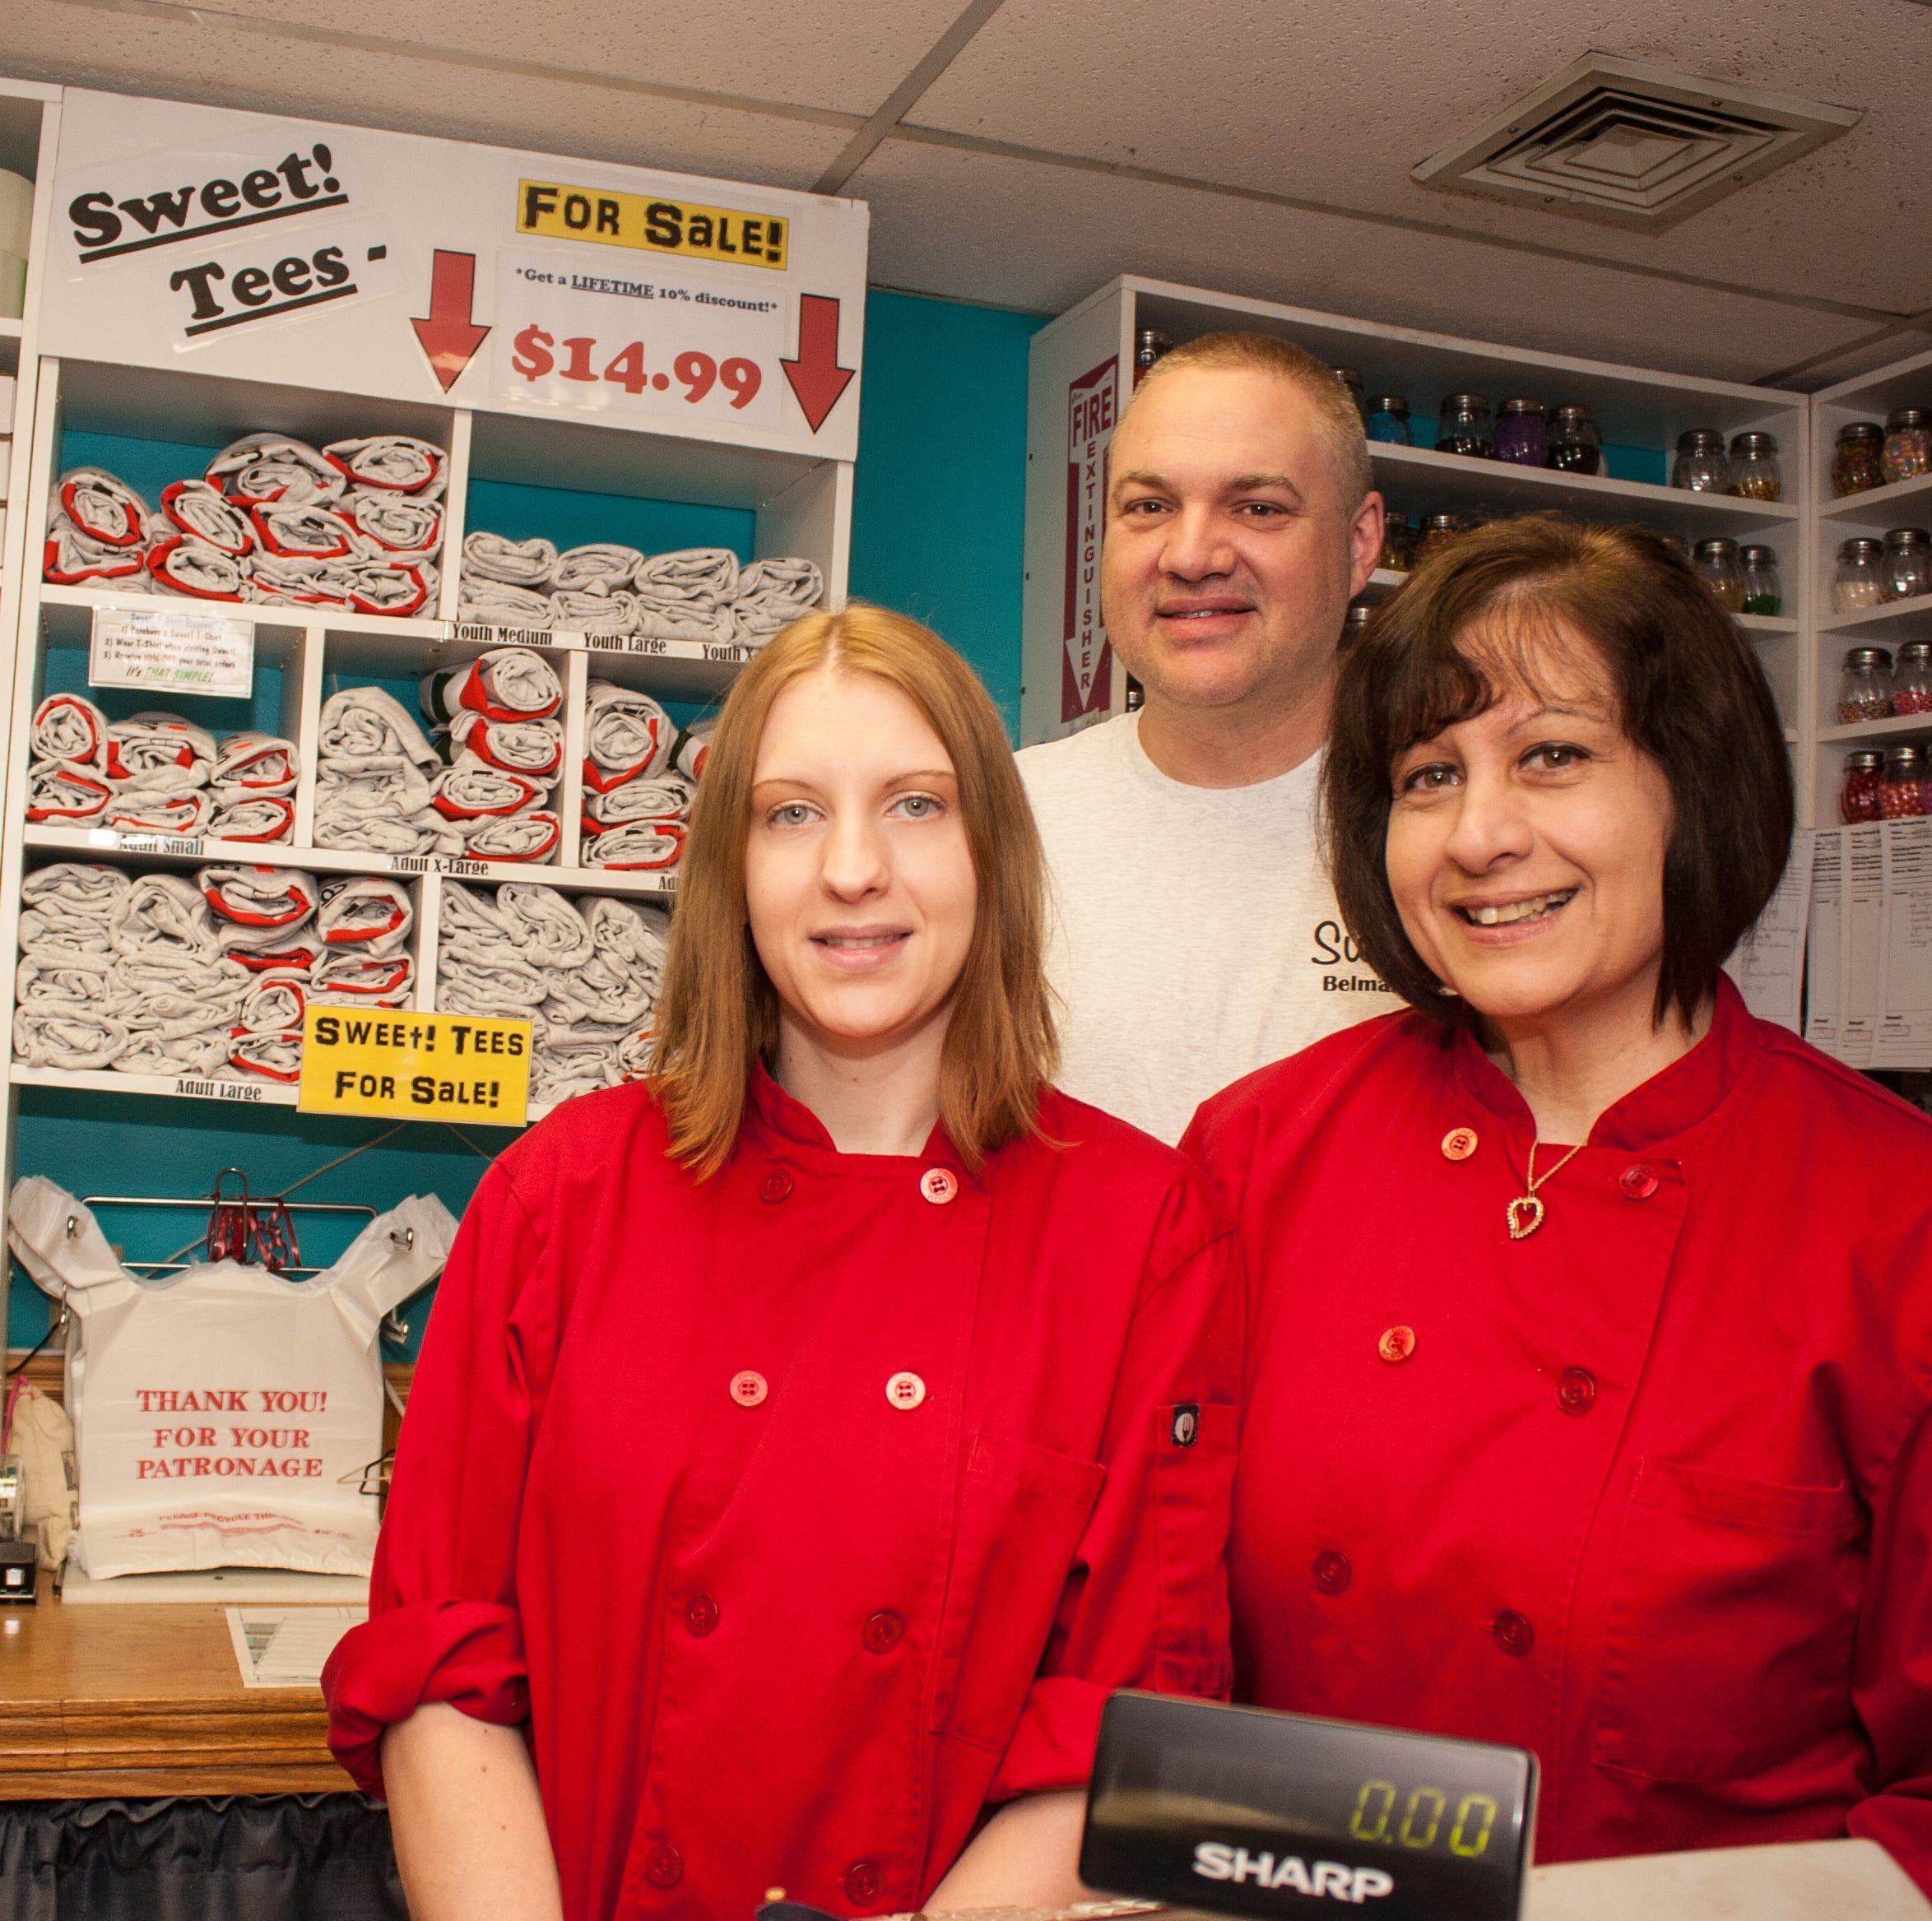 Sweet! in Belmar is a deliciously successful family bakery